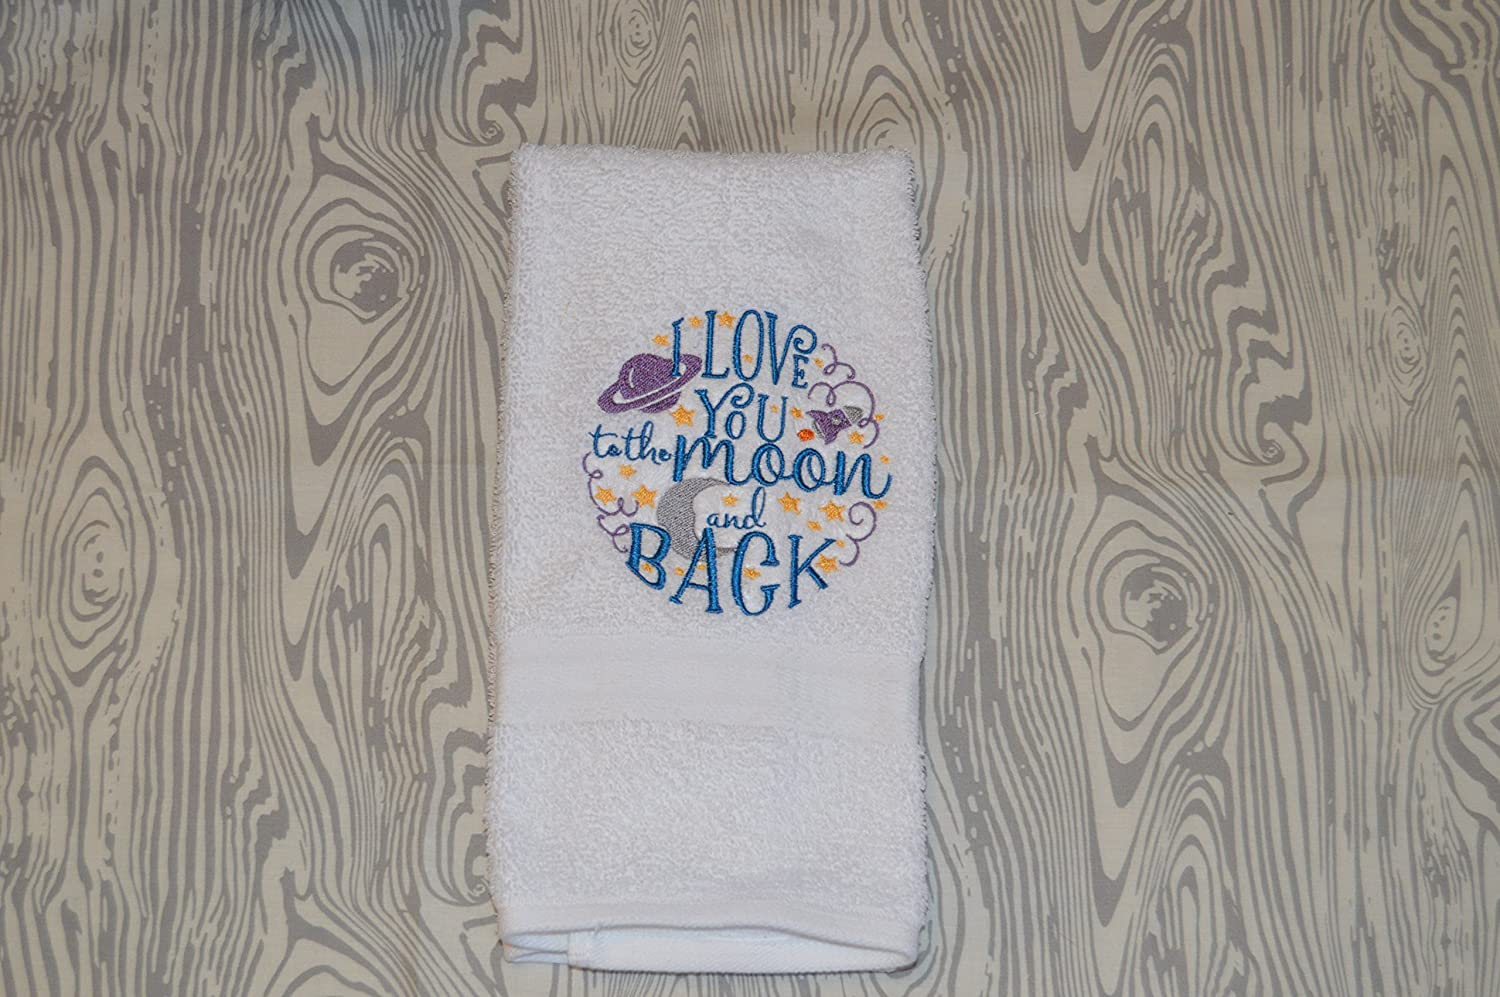 Machine Embroidered Bathroom Hand Max 79% OFF Towel Long Beach Mall I Moon a to the love you